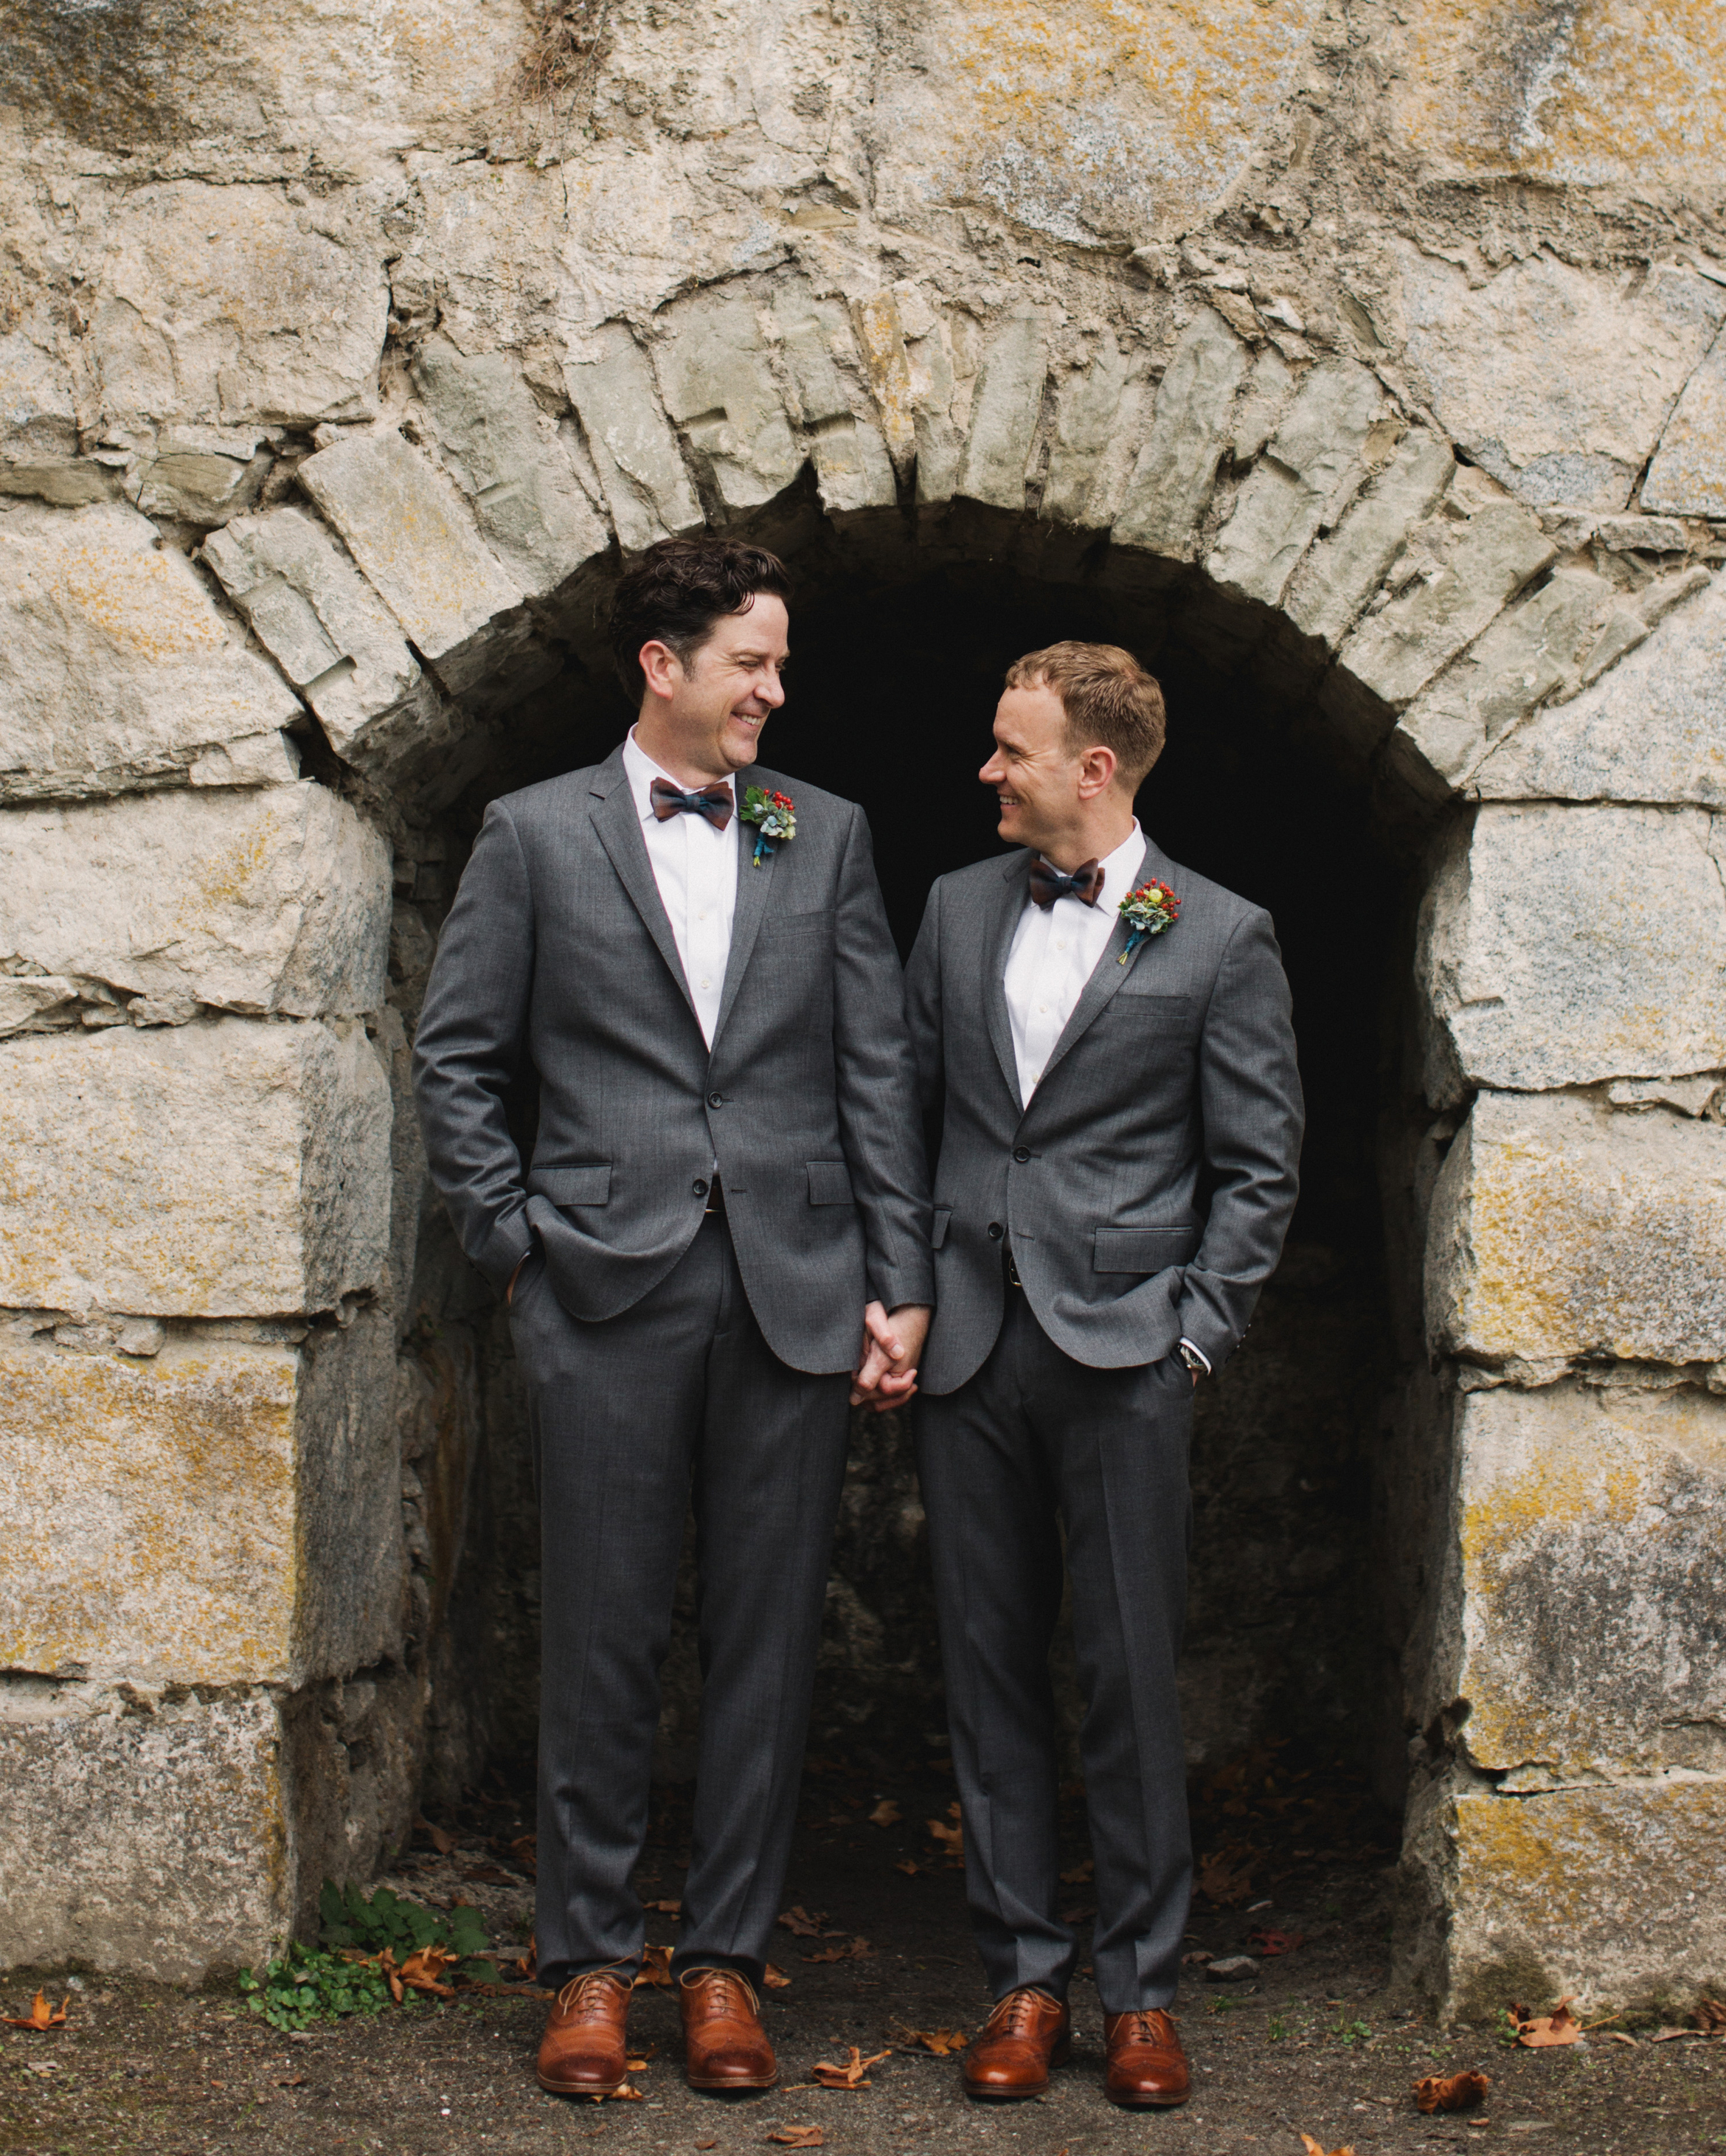 craig-andrew-wedding-couple-178-s111833-0215.jpg